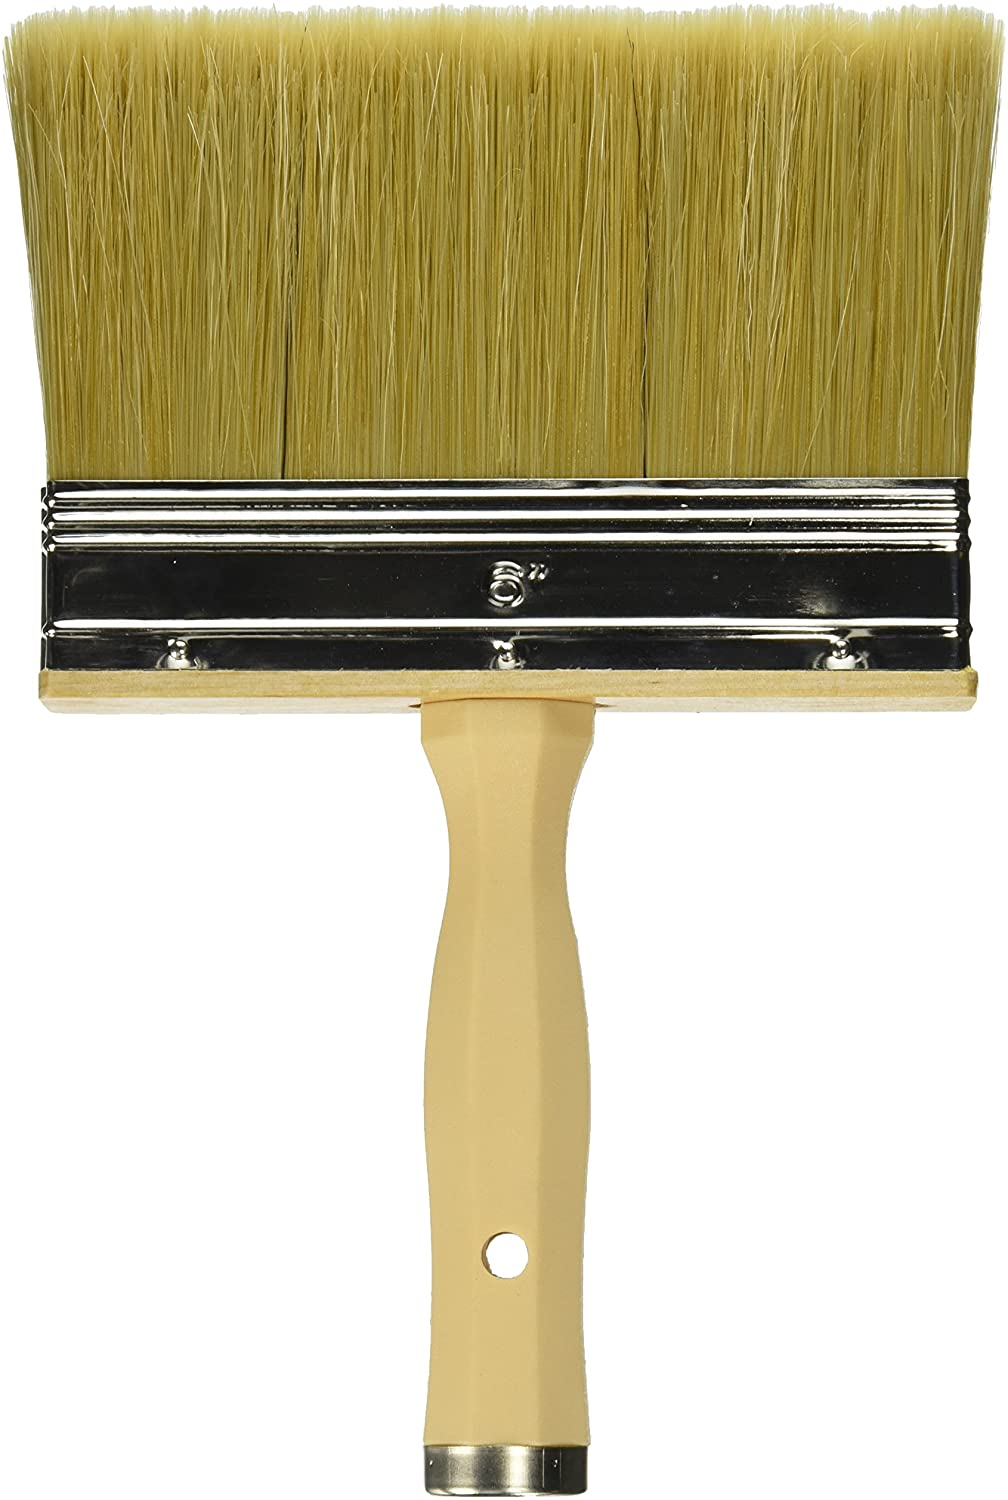 Linzer 0600 Project Select Premium Stain'N 3550 Paint Brush